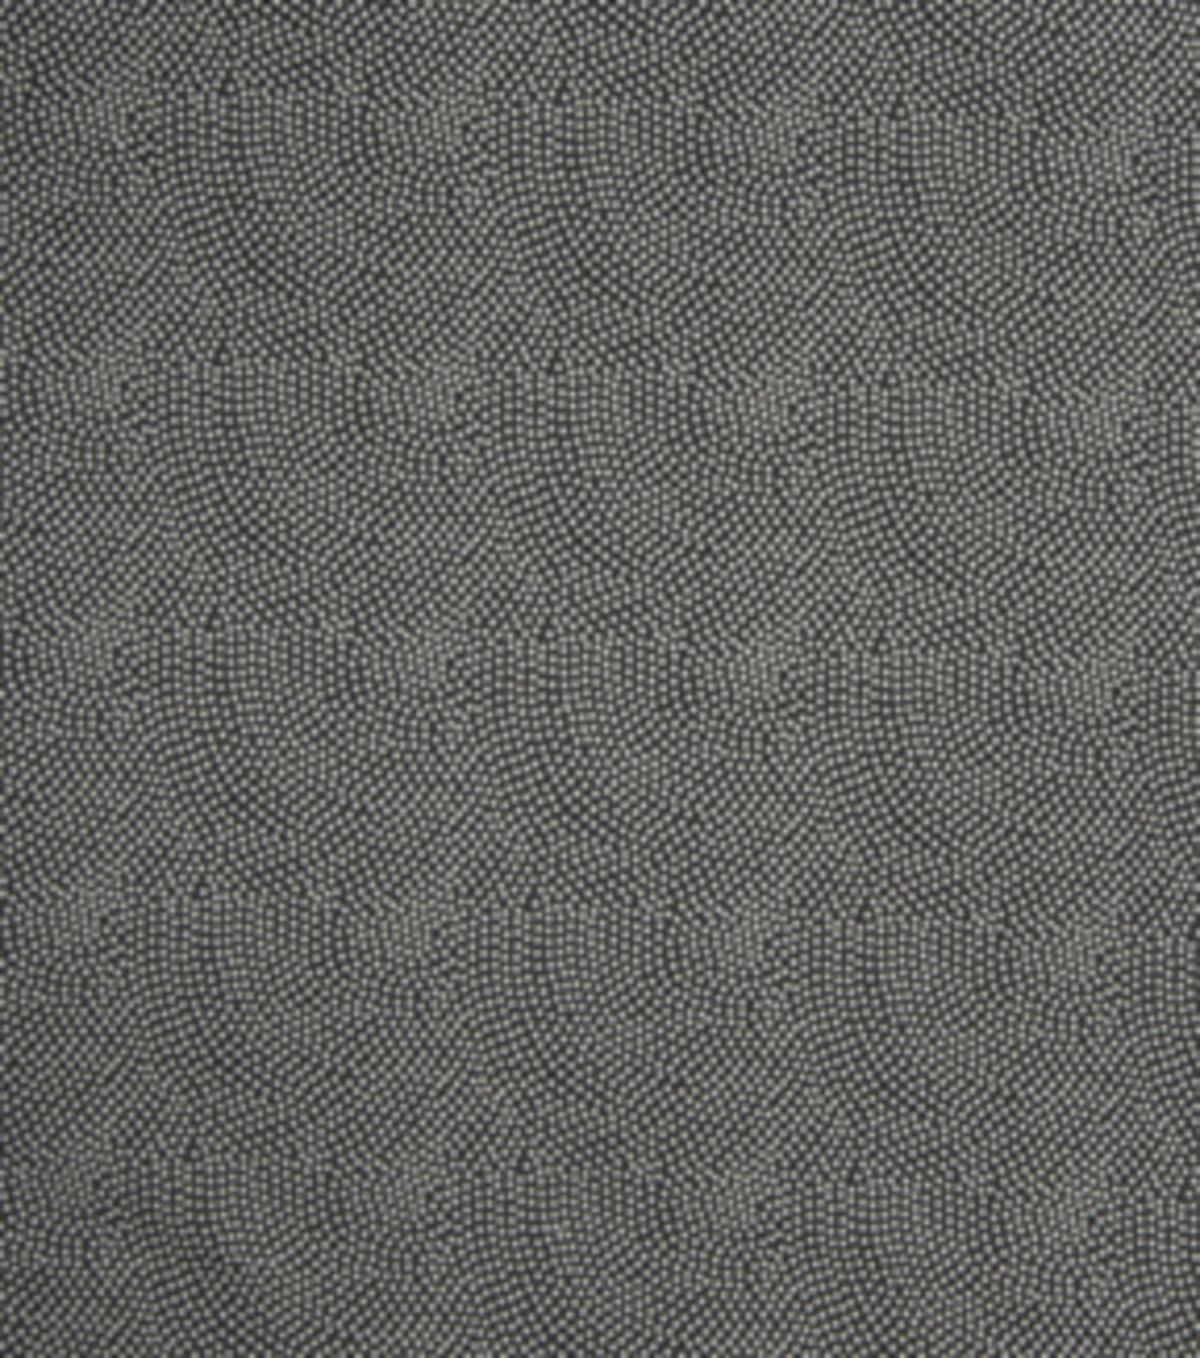 Home Decor 8\u0022x8\u0022 Fabric Swatch-Eaton Square Buffet Black And White